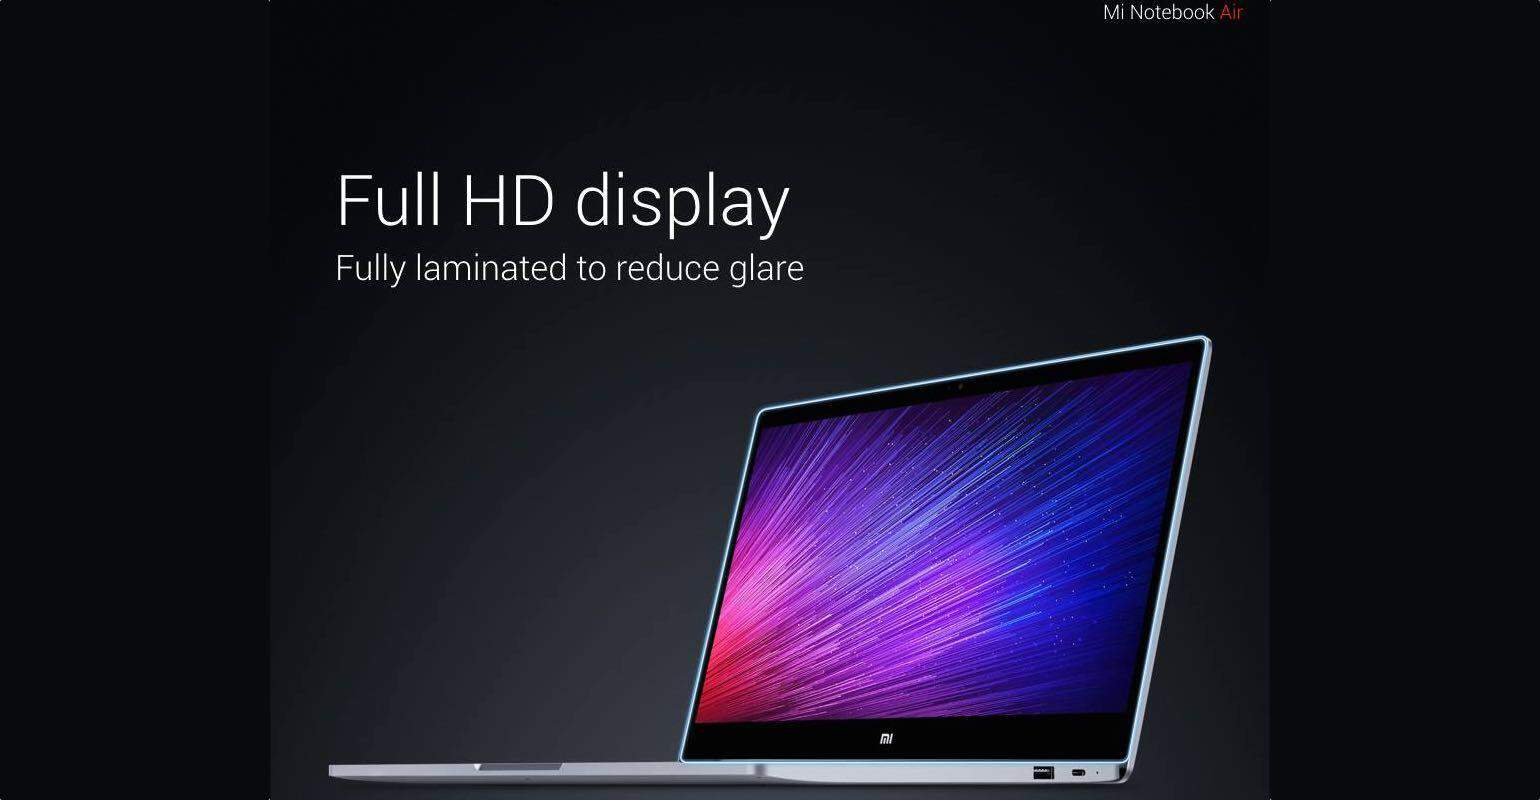 Xiaomi Mi Notebook Air scherm